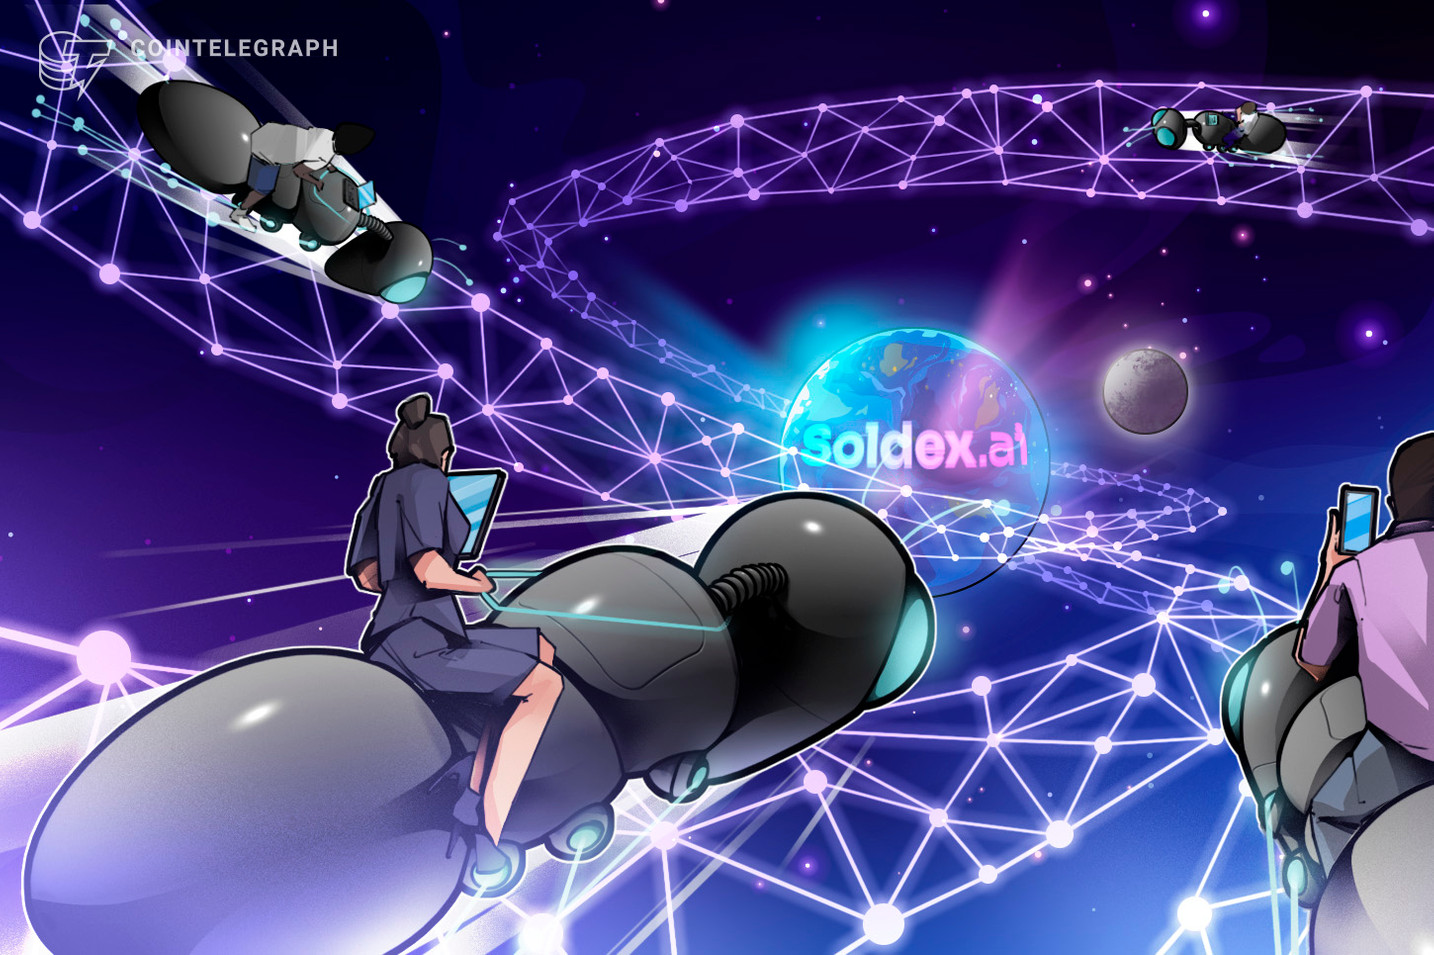 Solana-built decentralized exchange uses AI to make trading more accessible